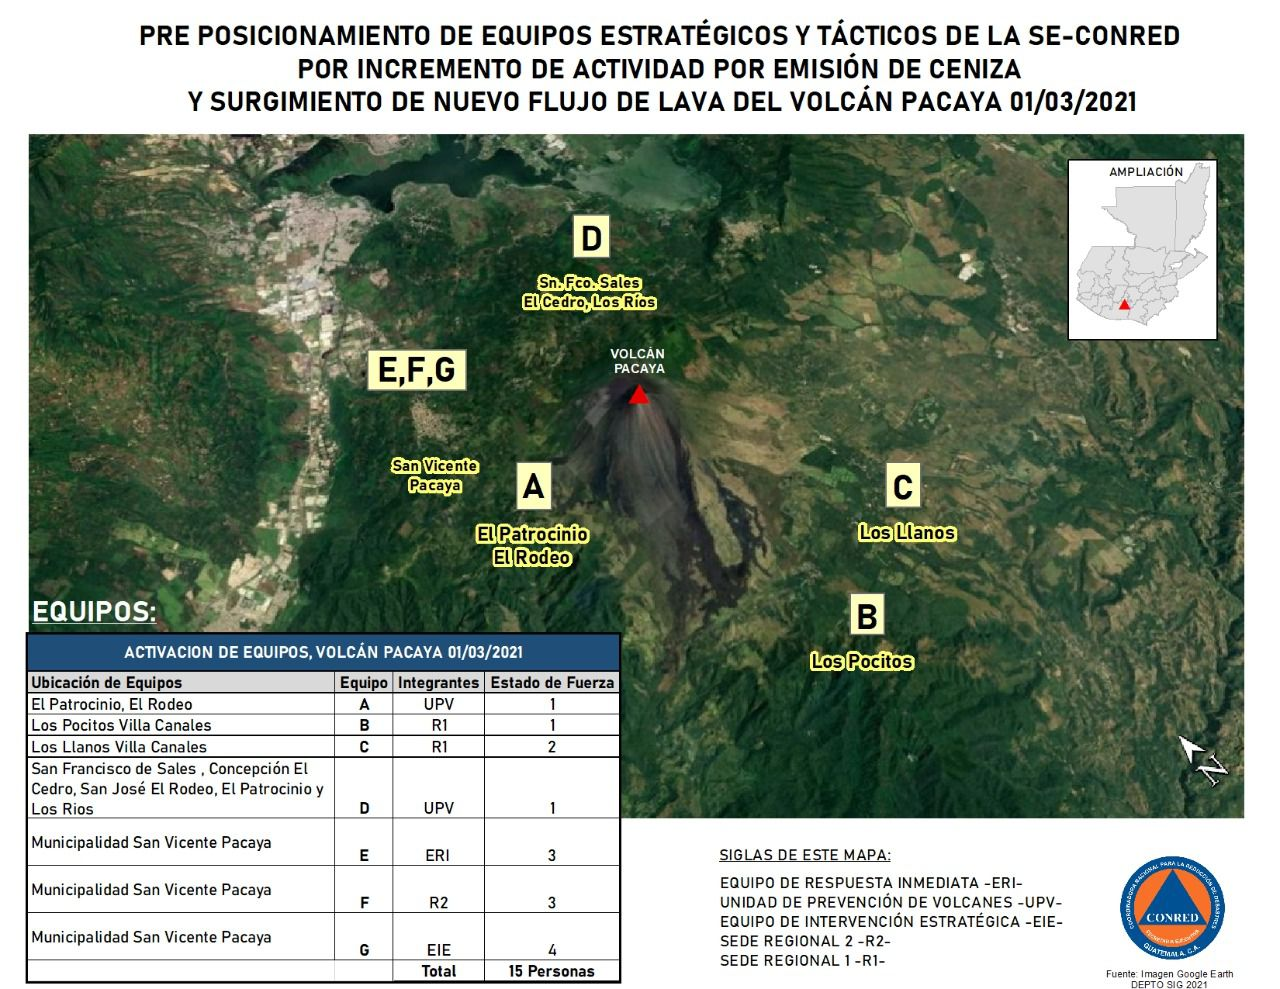 THE PACAYA VOLCANO. The volcano prevention unit -UPV-, the strategic intervention team -EIE-, the immediate intervention team -ERI- and the CONRED I region, are deployed at different strategic points to check the conditions and coordinate actions with the hierarchical system of coordinators.